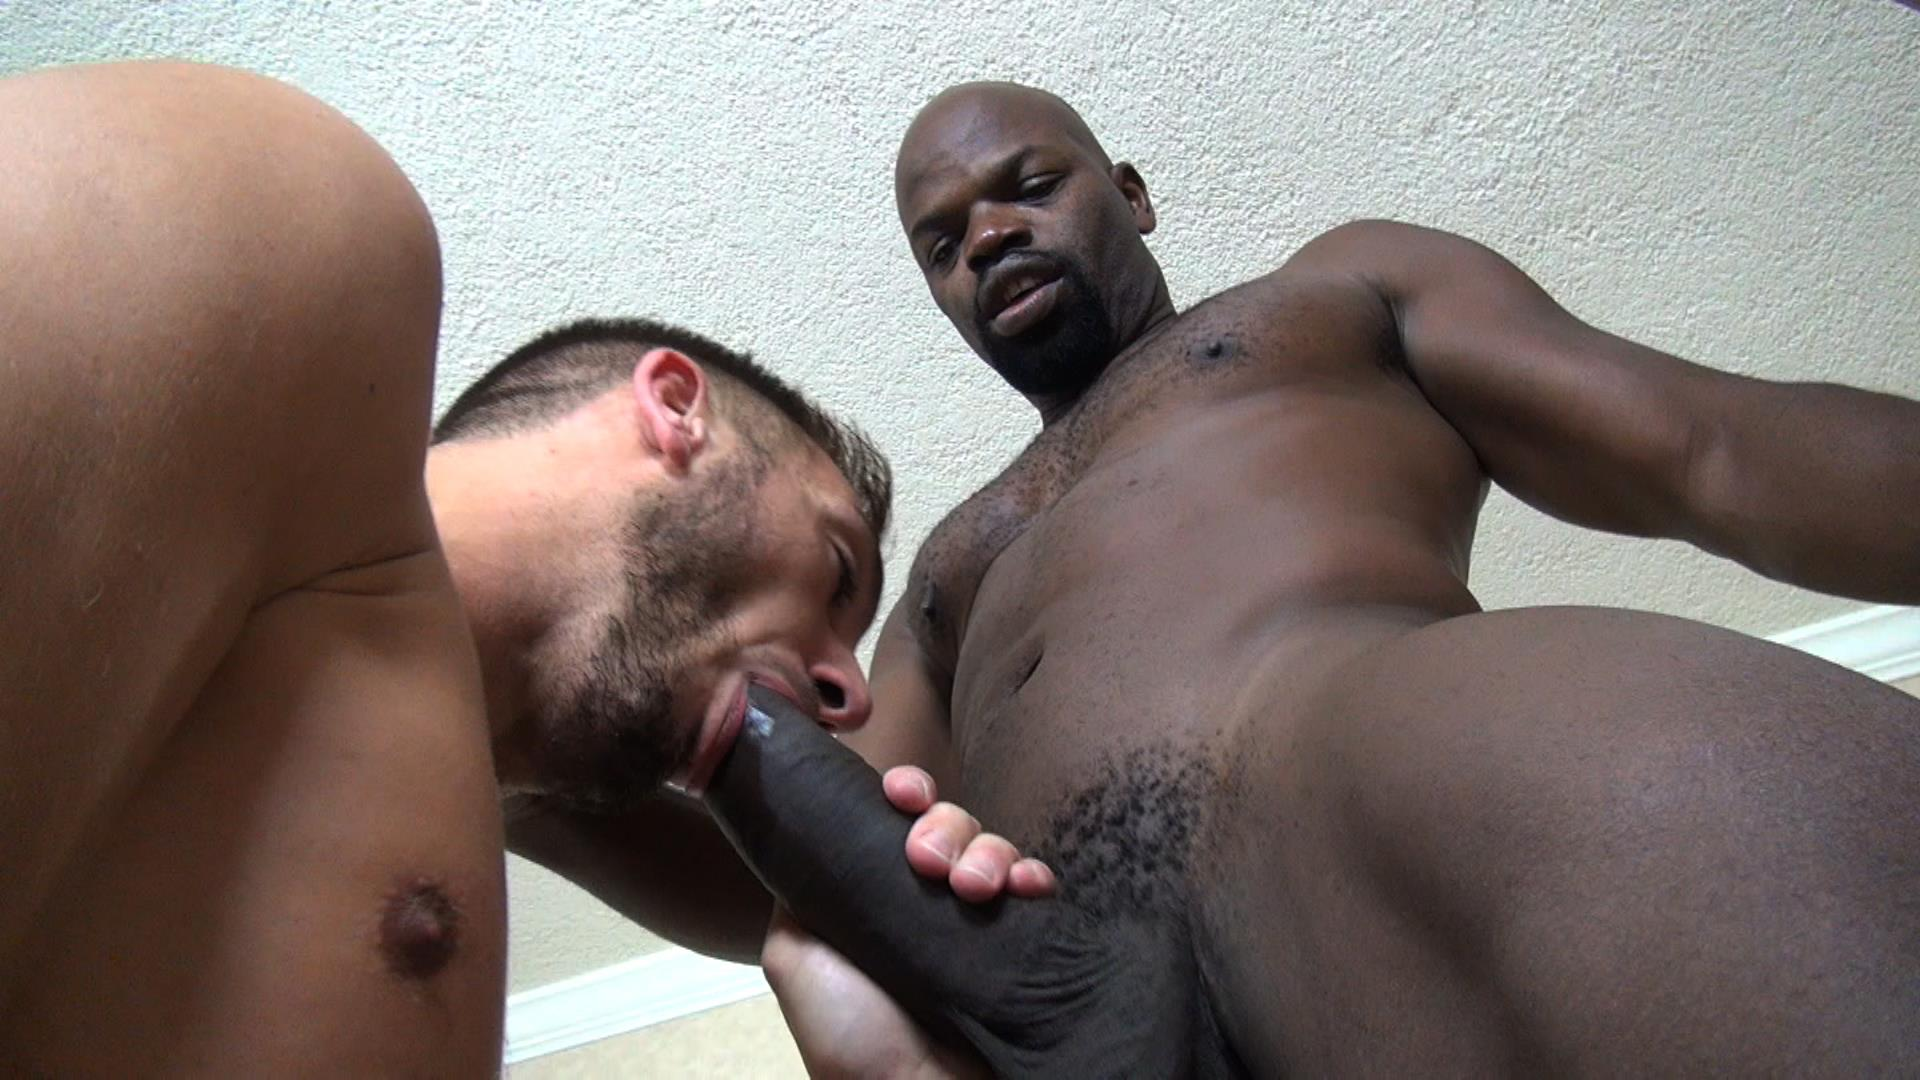 sucking big dicks in public gay